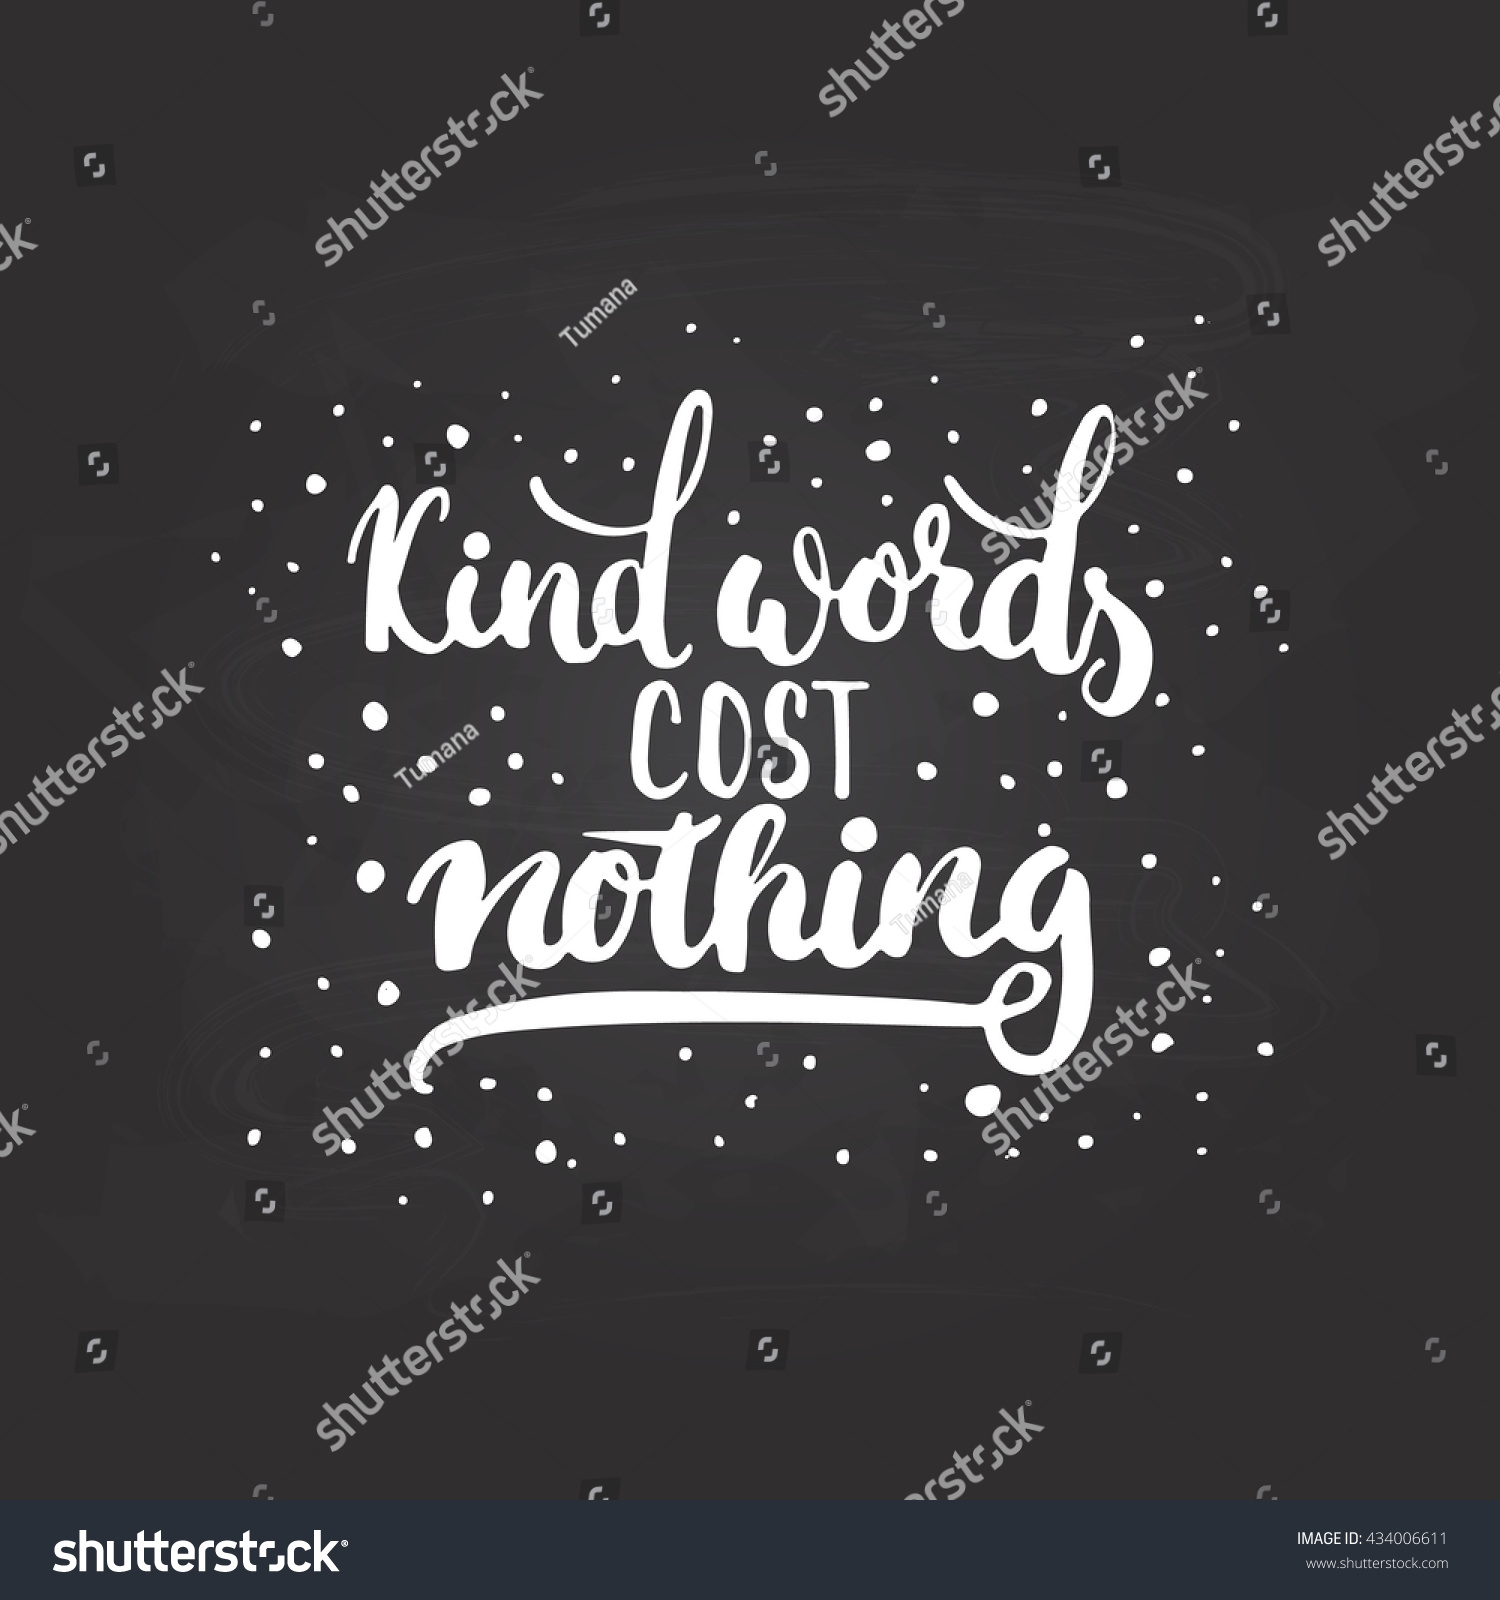 Poster design cost - Kind Words Cost Nothing Hand Drawn Lettering Phrase Isolated On The Chalkboard Background